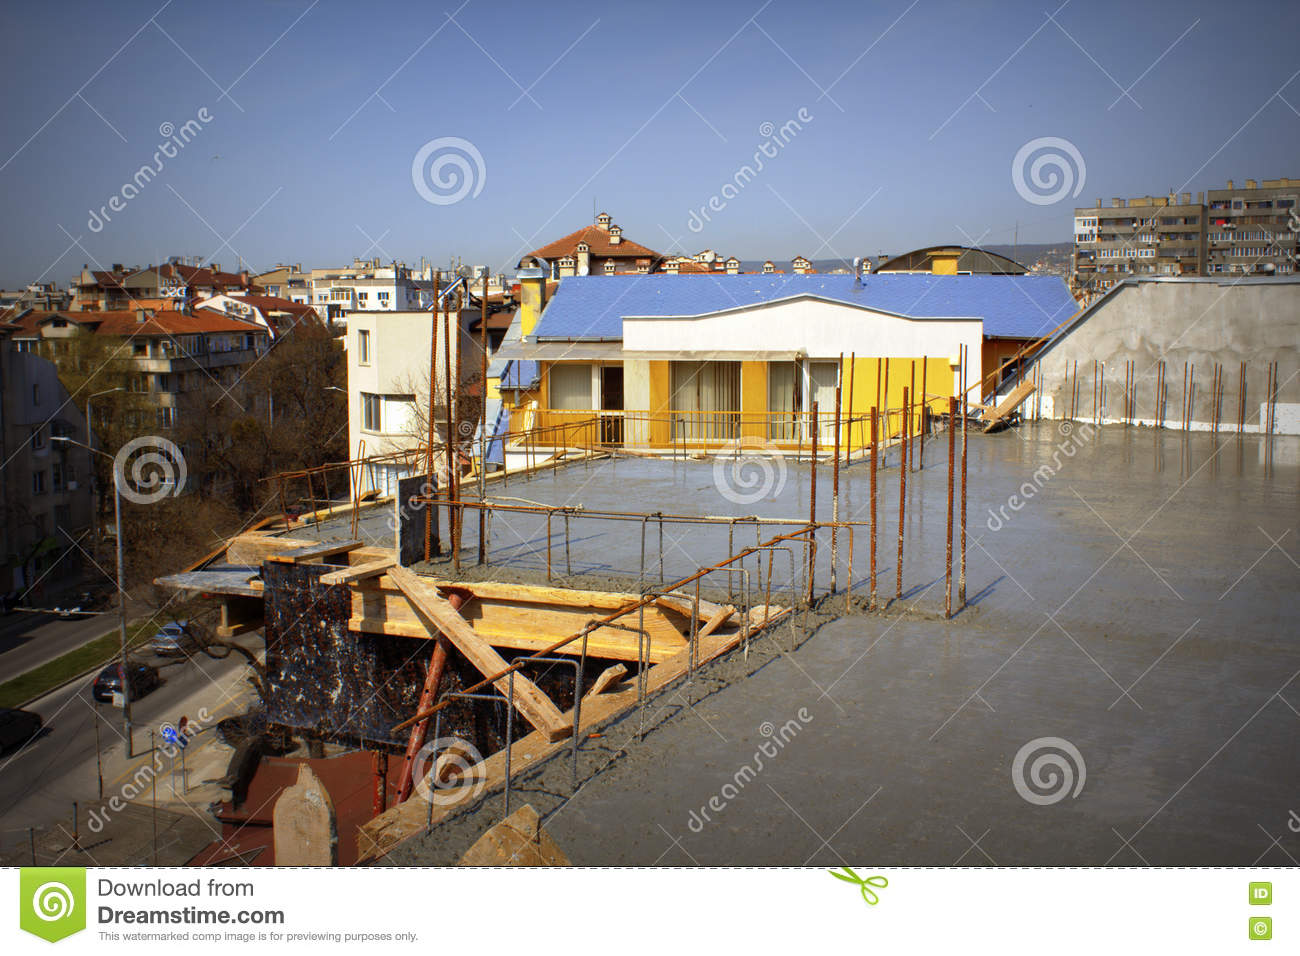 Residential District Construction Site Stock Photo - Image ...